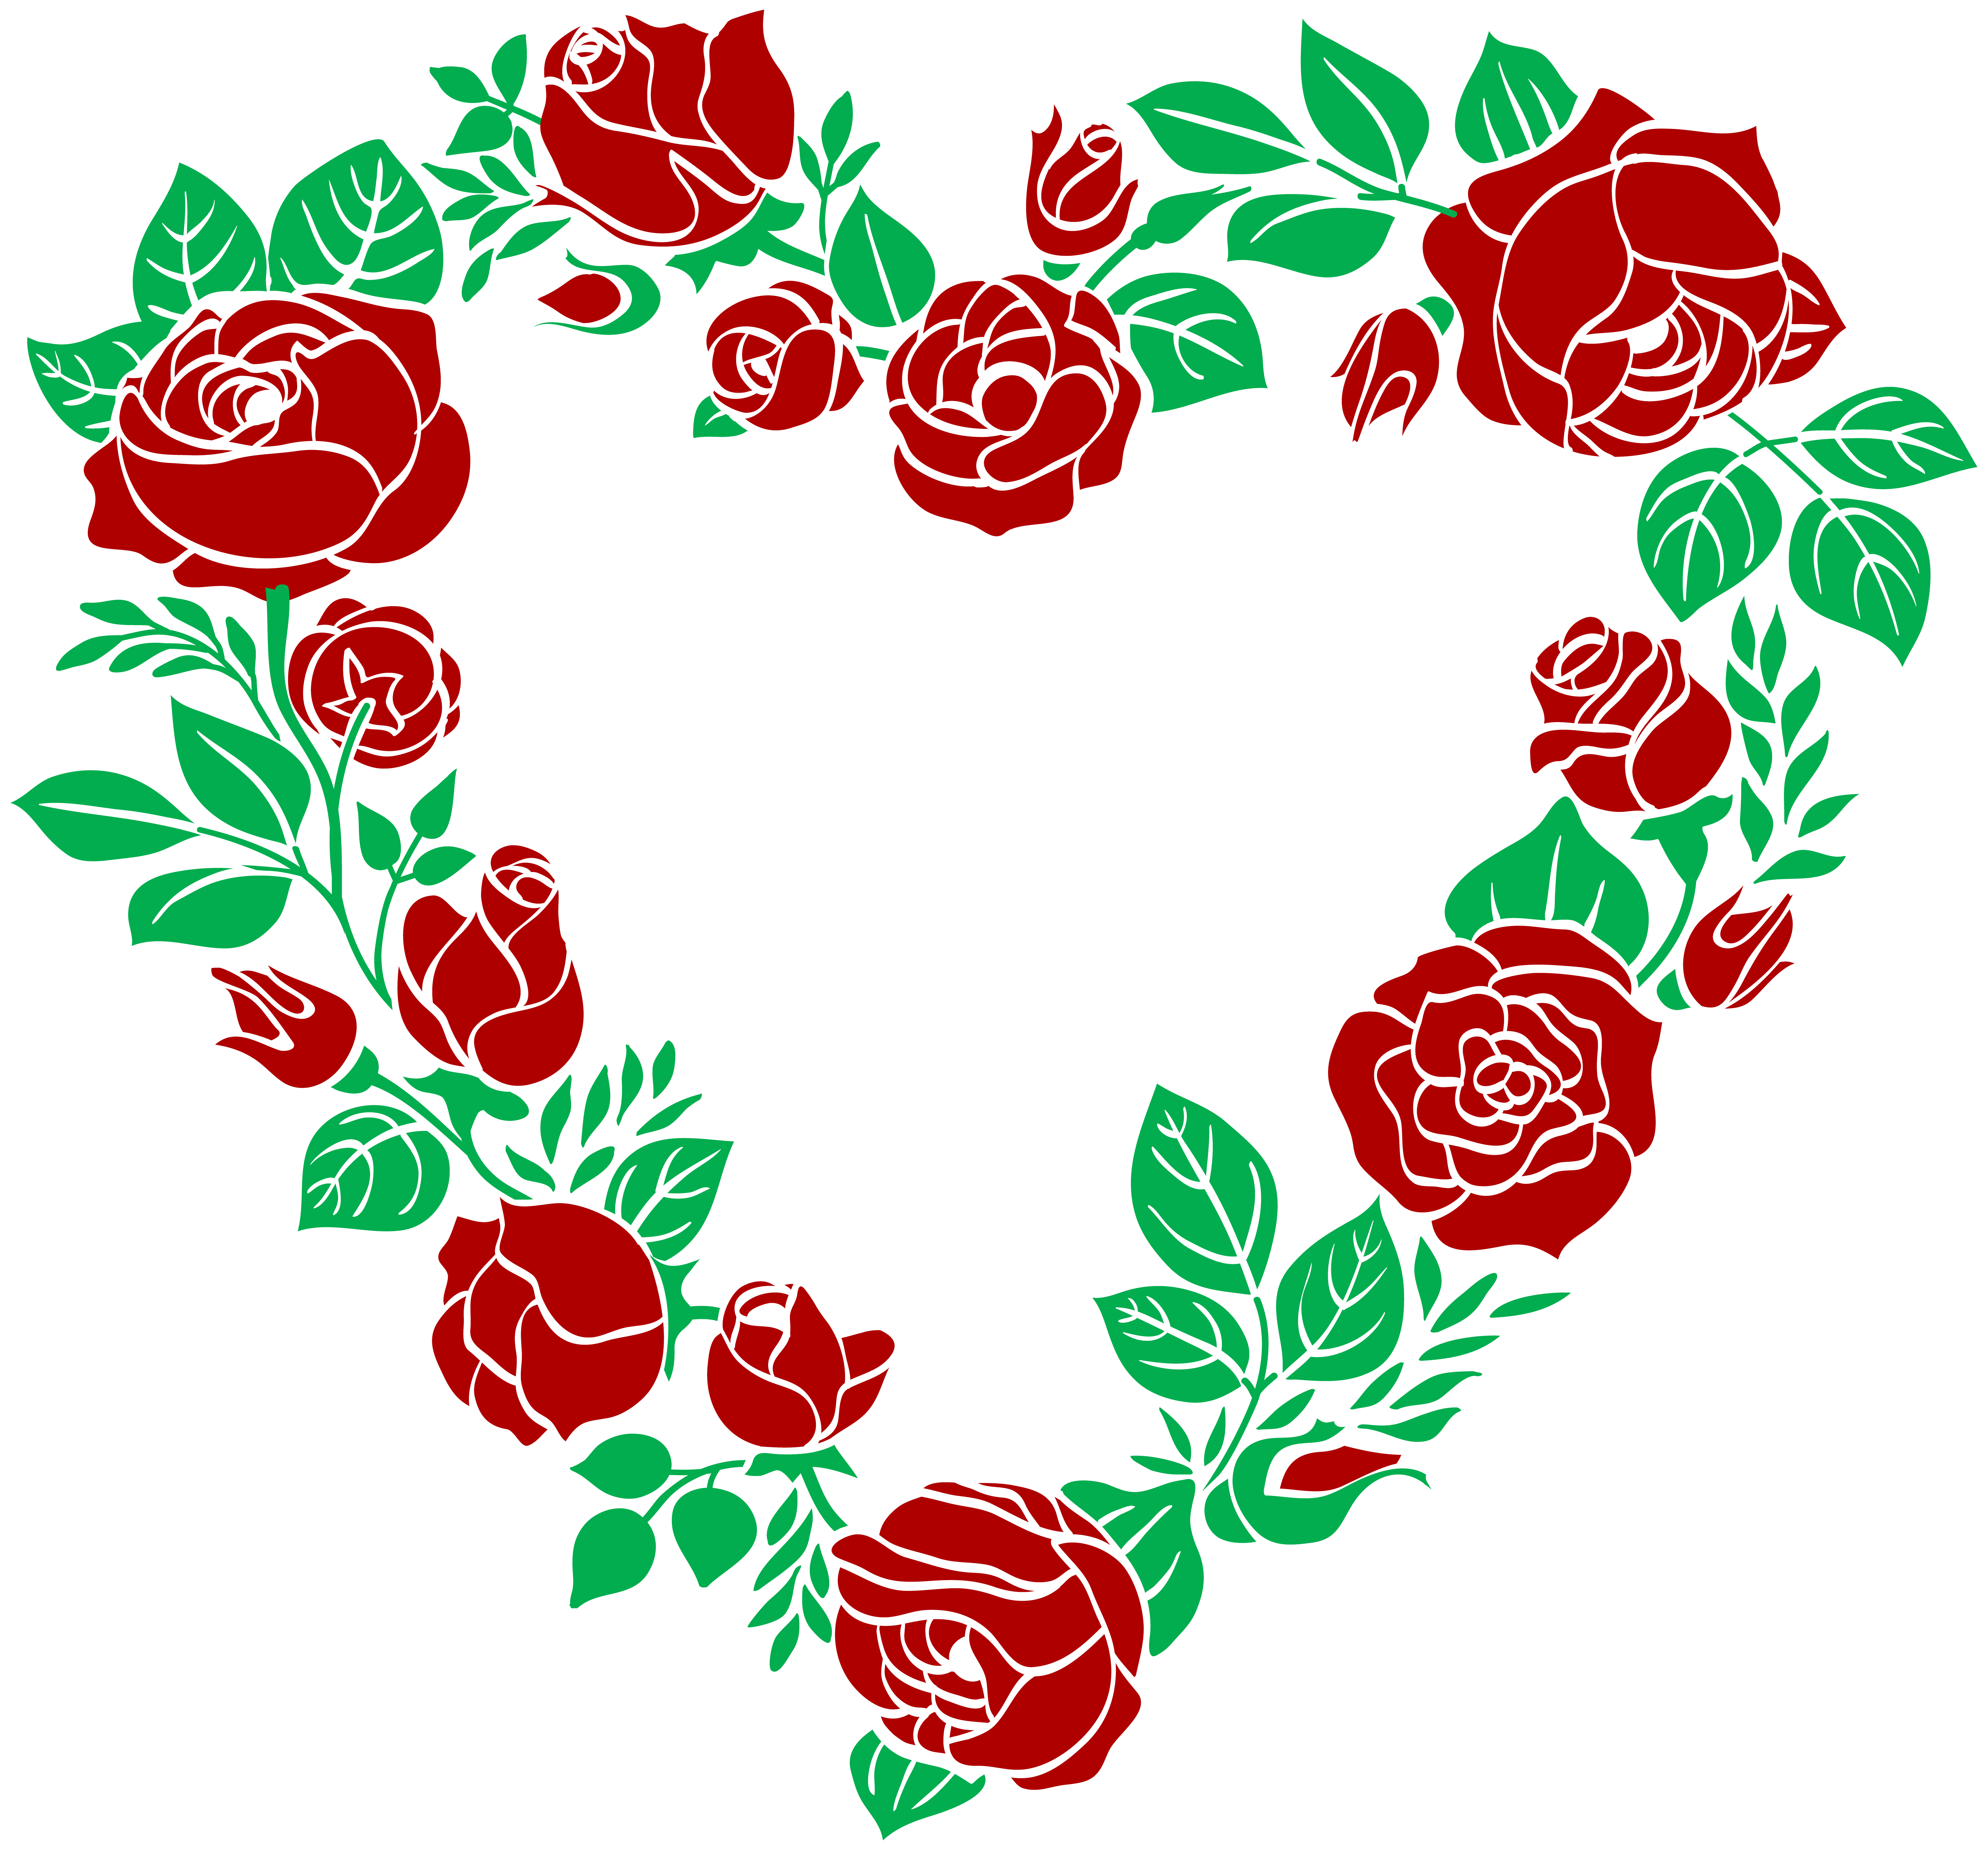 Red Rose Heart Border PNG Clip Art Image.